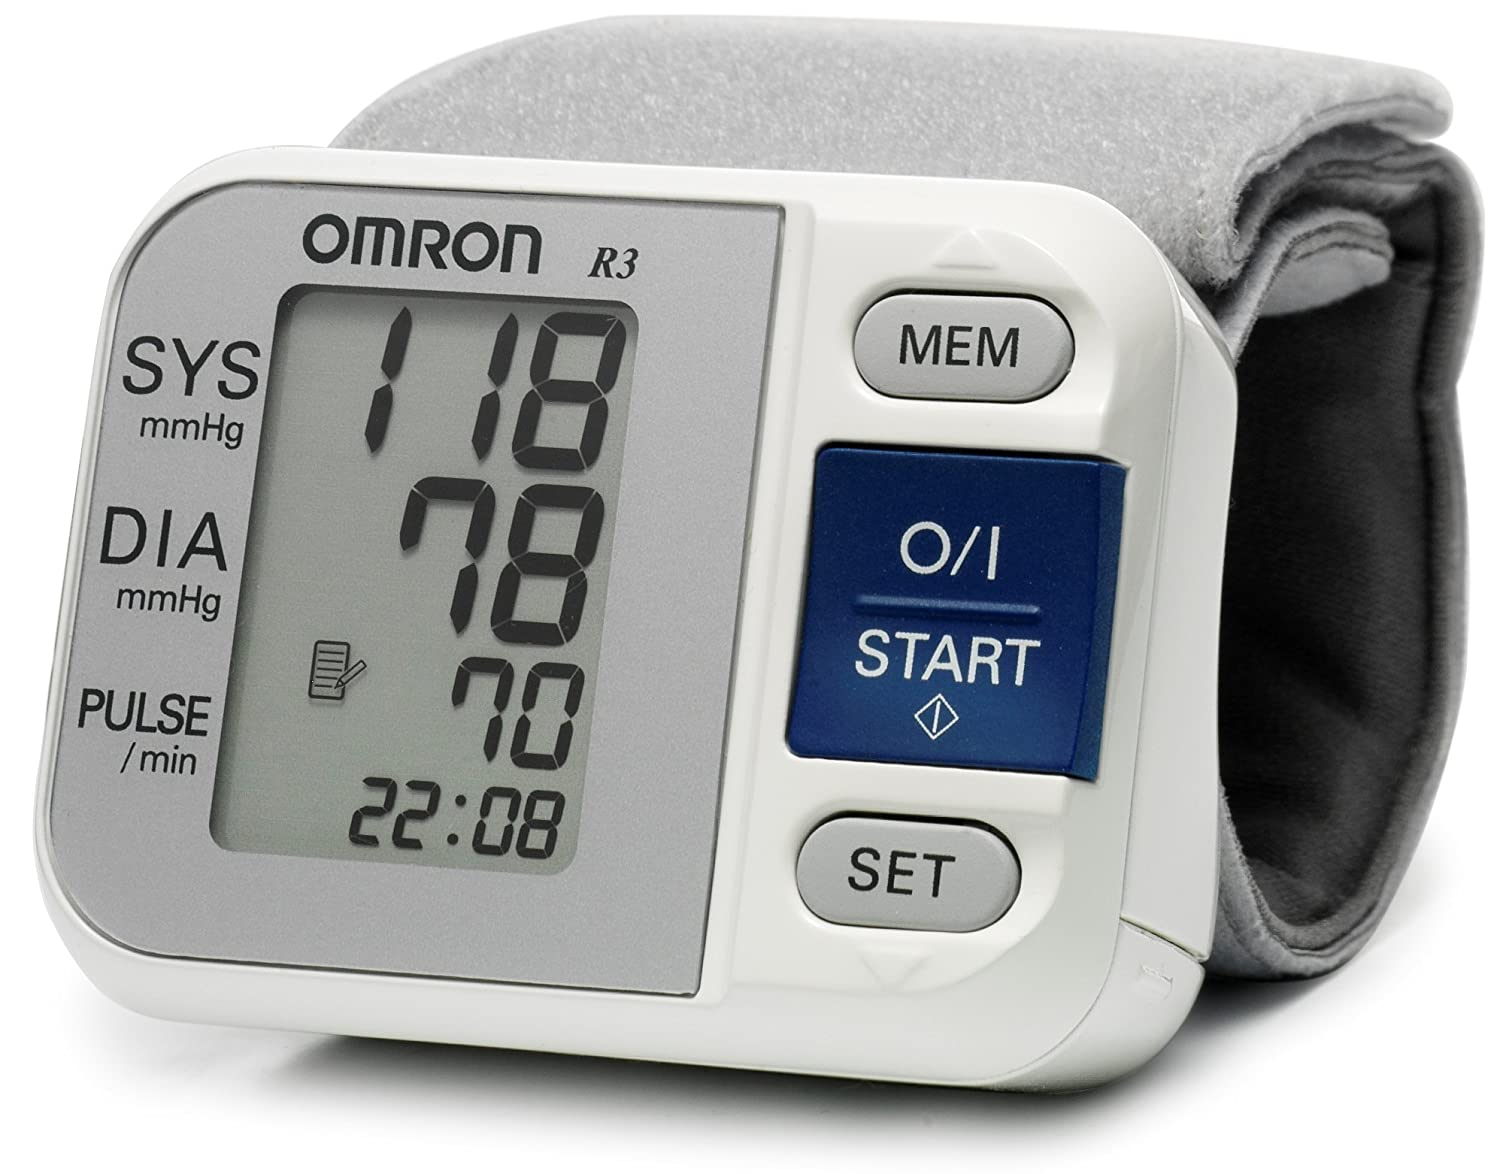 Amazon.com: Omron R3 Wrist Blood Pressure Monitor: Health ...